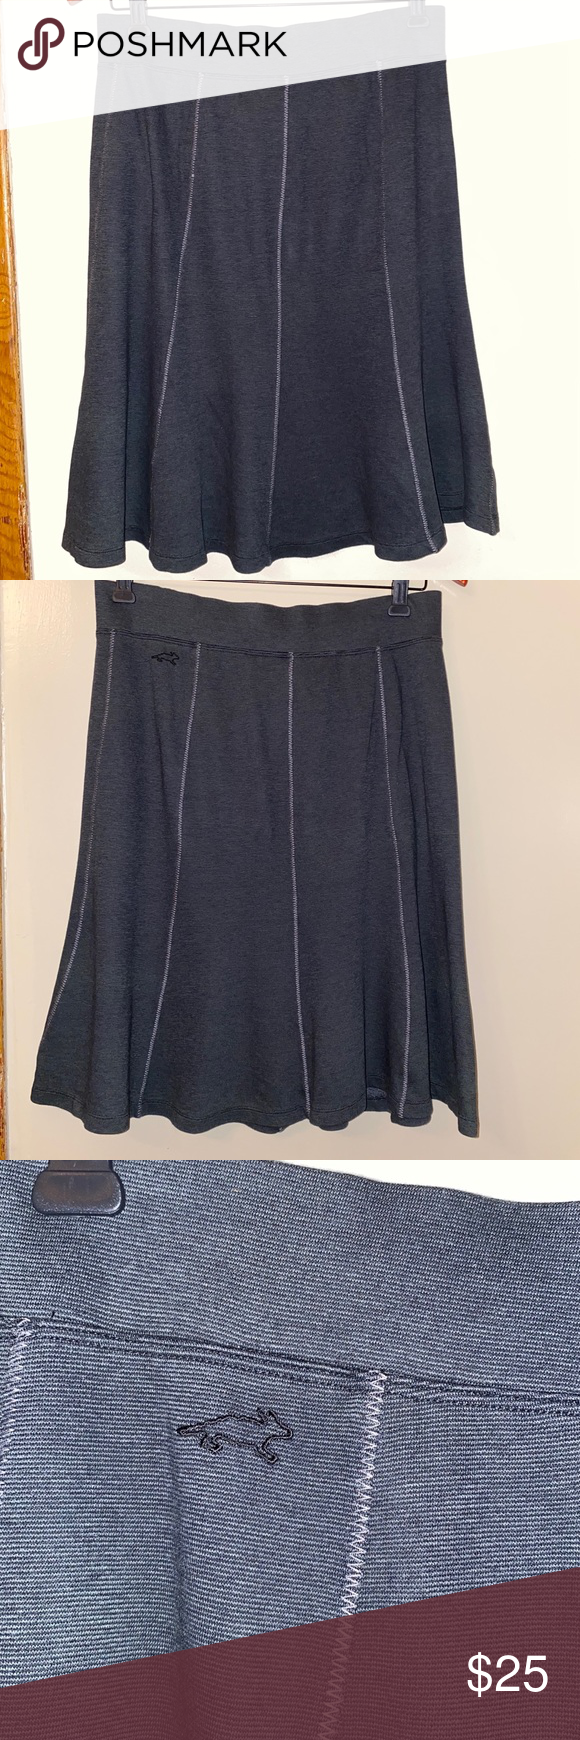 """Horny Toad Skirt Approximate measurements  - Waist: 14"""" - Length: 22"""" -Condition: excellent, pre-owned. Smoke and pet free home.   -0380 Horny Toad Skirts"""